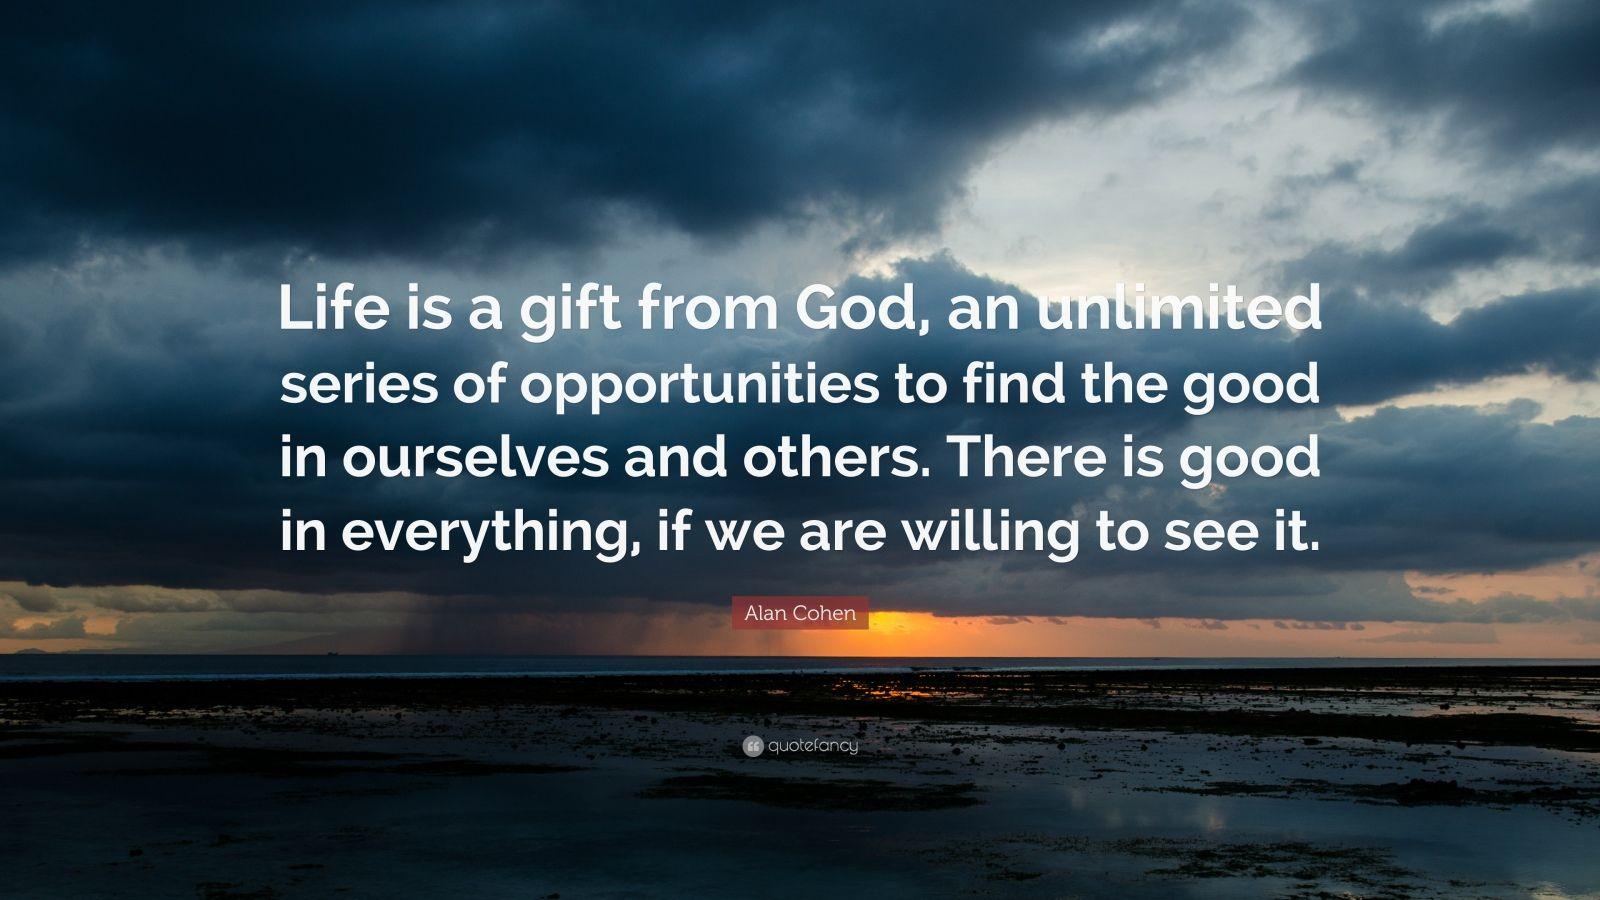 """Alan Cohen Quote: """"Life is a gift from God, an unlimited series of opportunities to find the good in ourselves and others. There is good in everything, if we are willing to see it."""""""